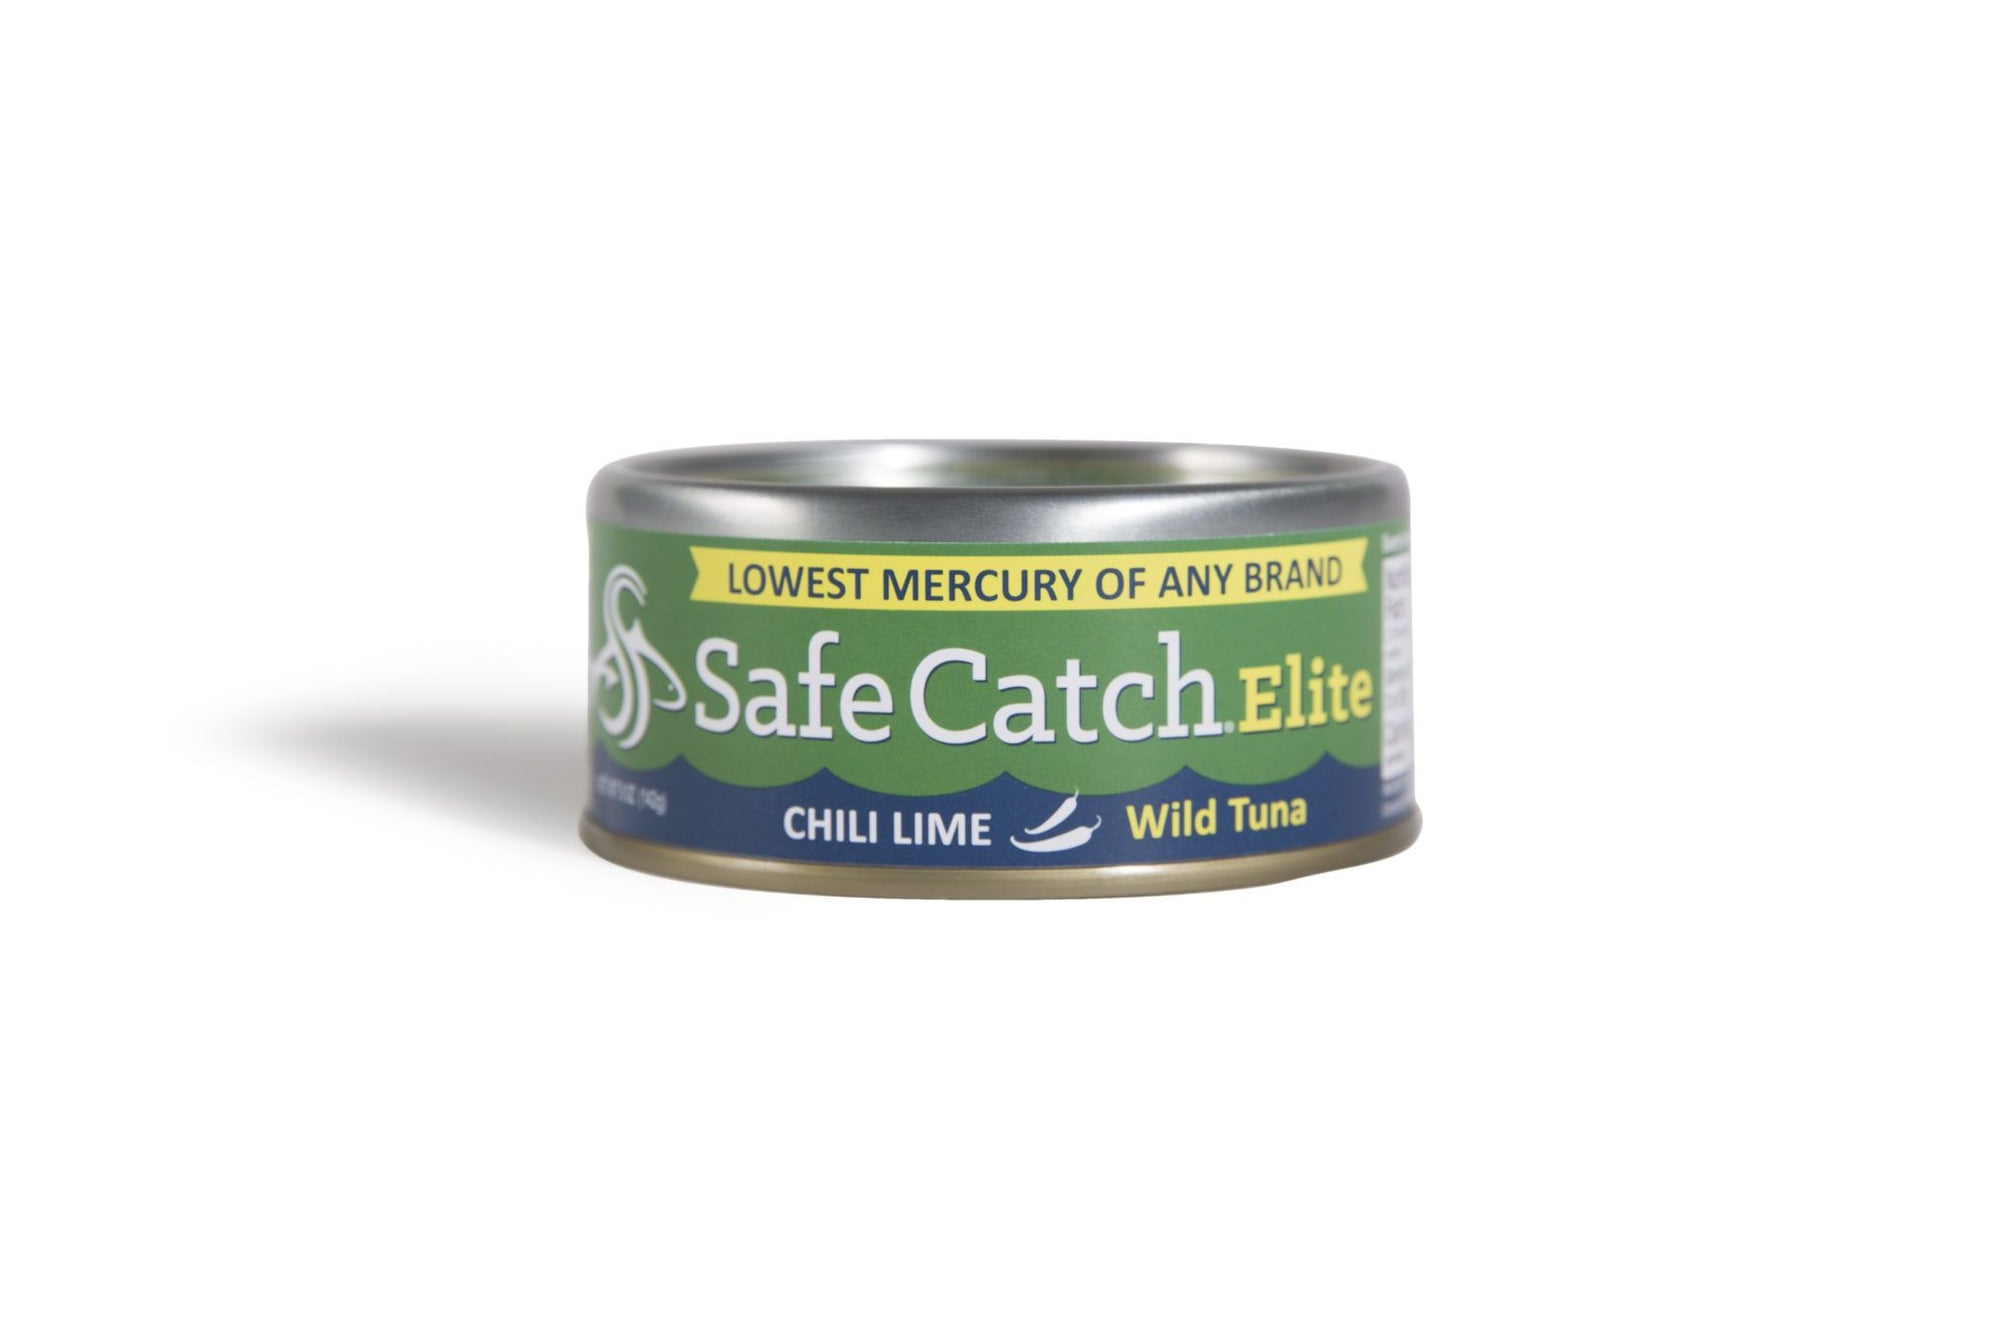 Food & Drink - Safe Catch - Seasoned Elite Tuna (Chili Lime), 142g